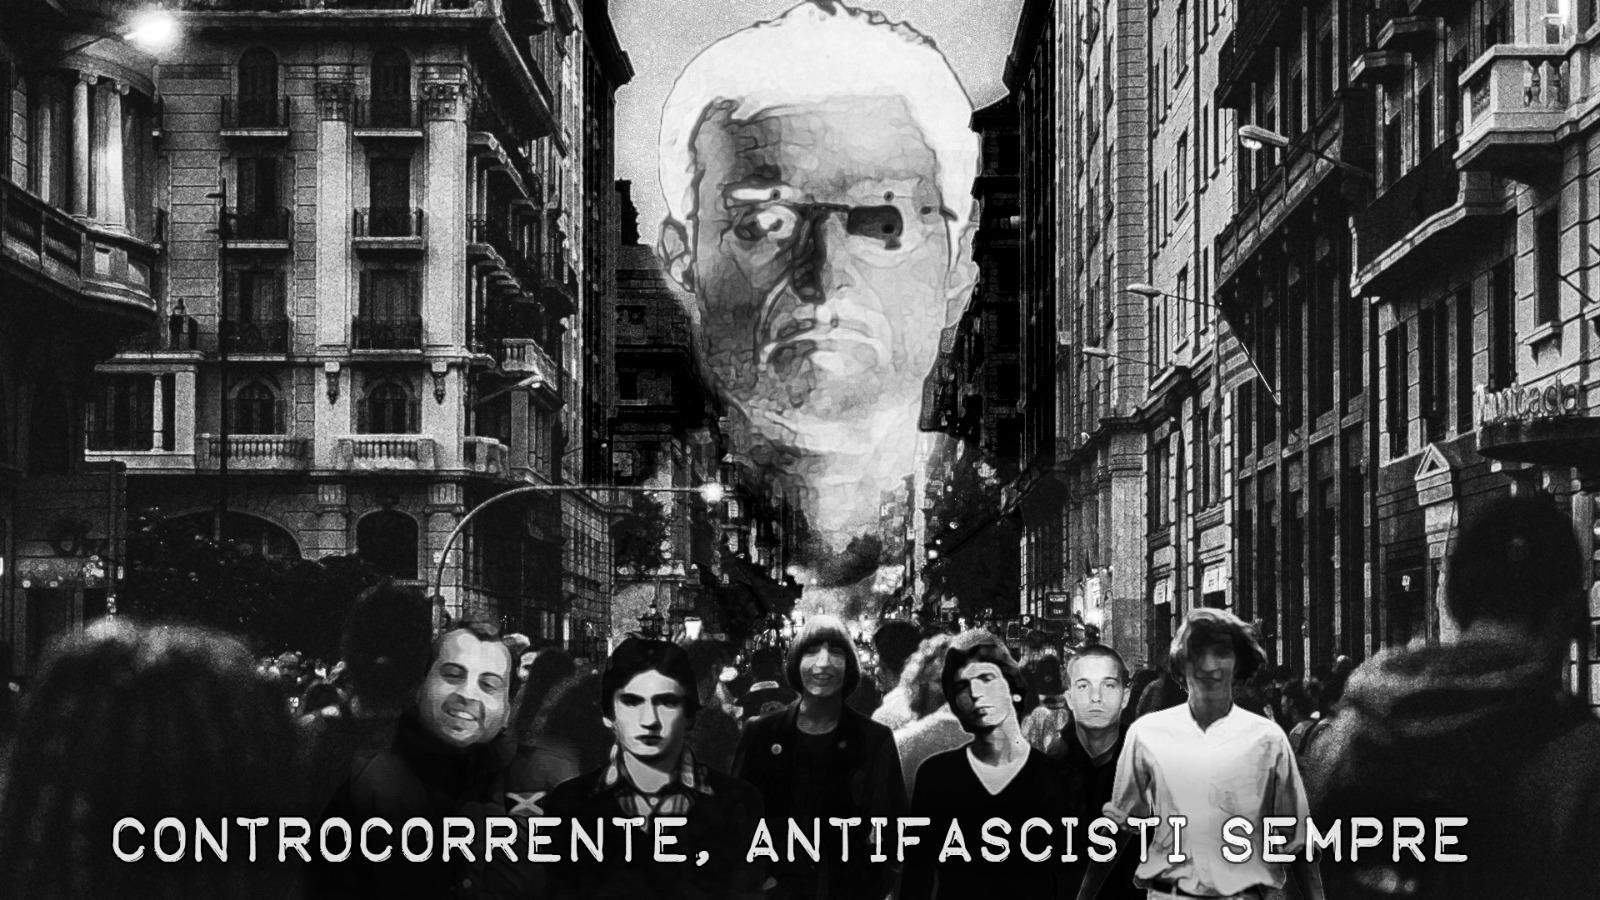 CONTROCORRENTE - ANTIFASCISTI SEMPRE